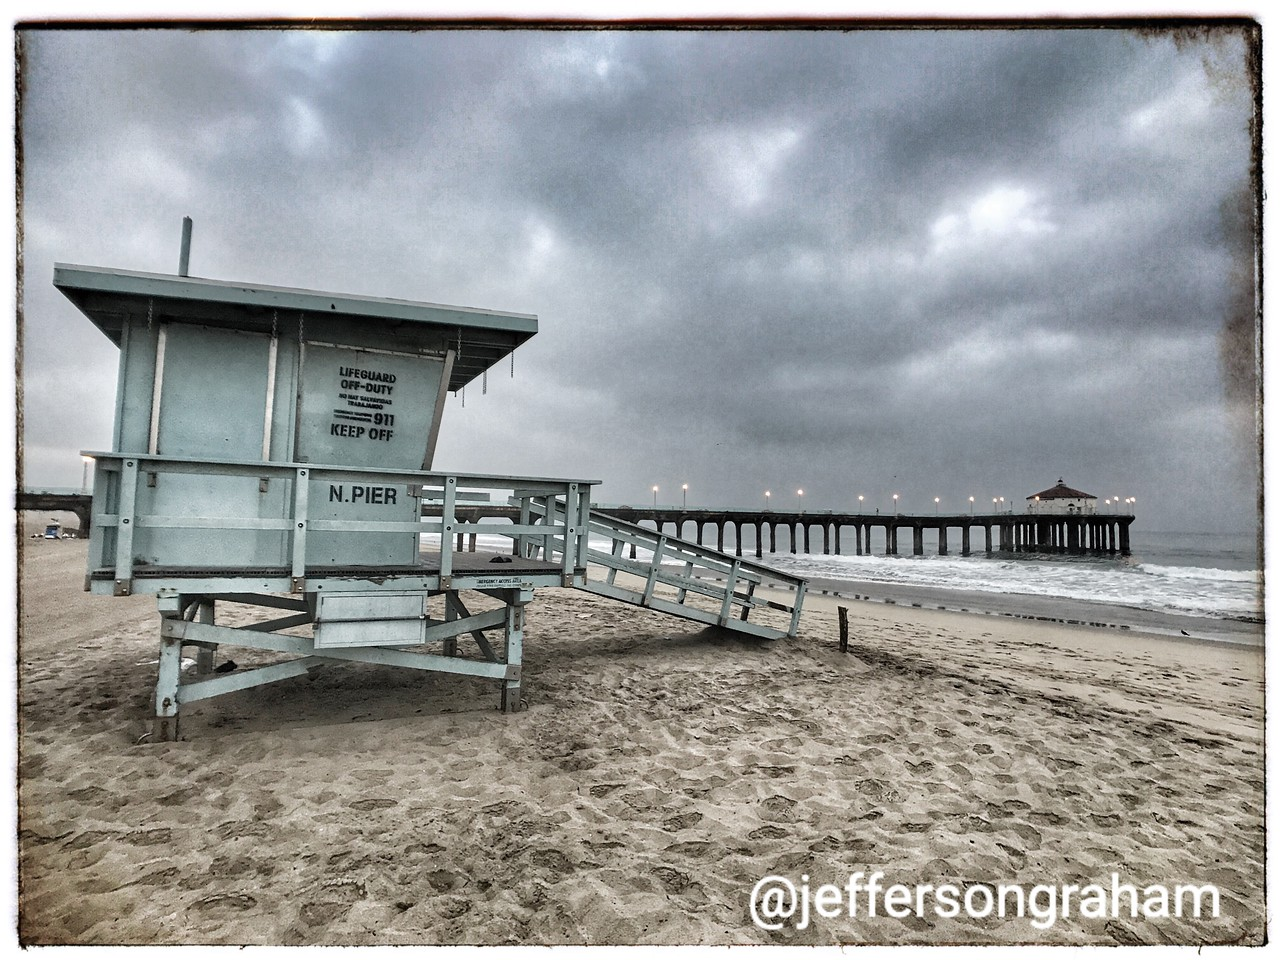 Lifeguard station and Pier